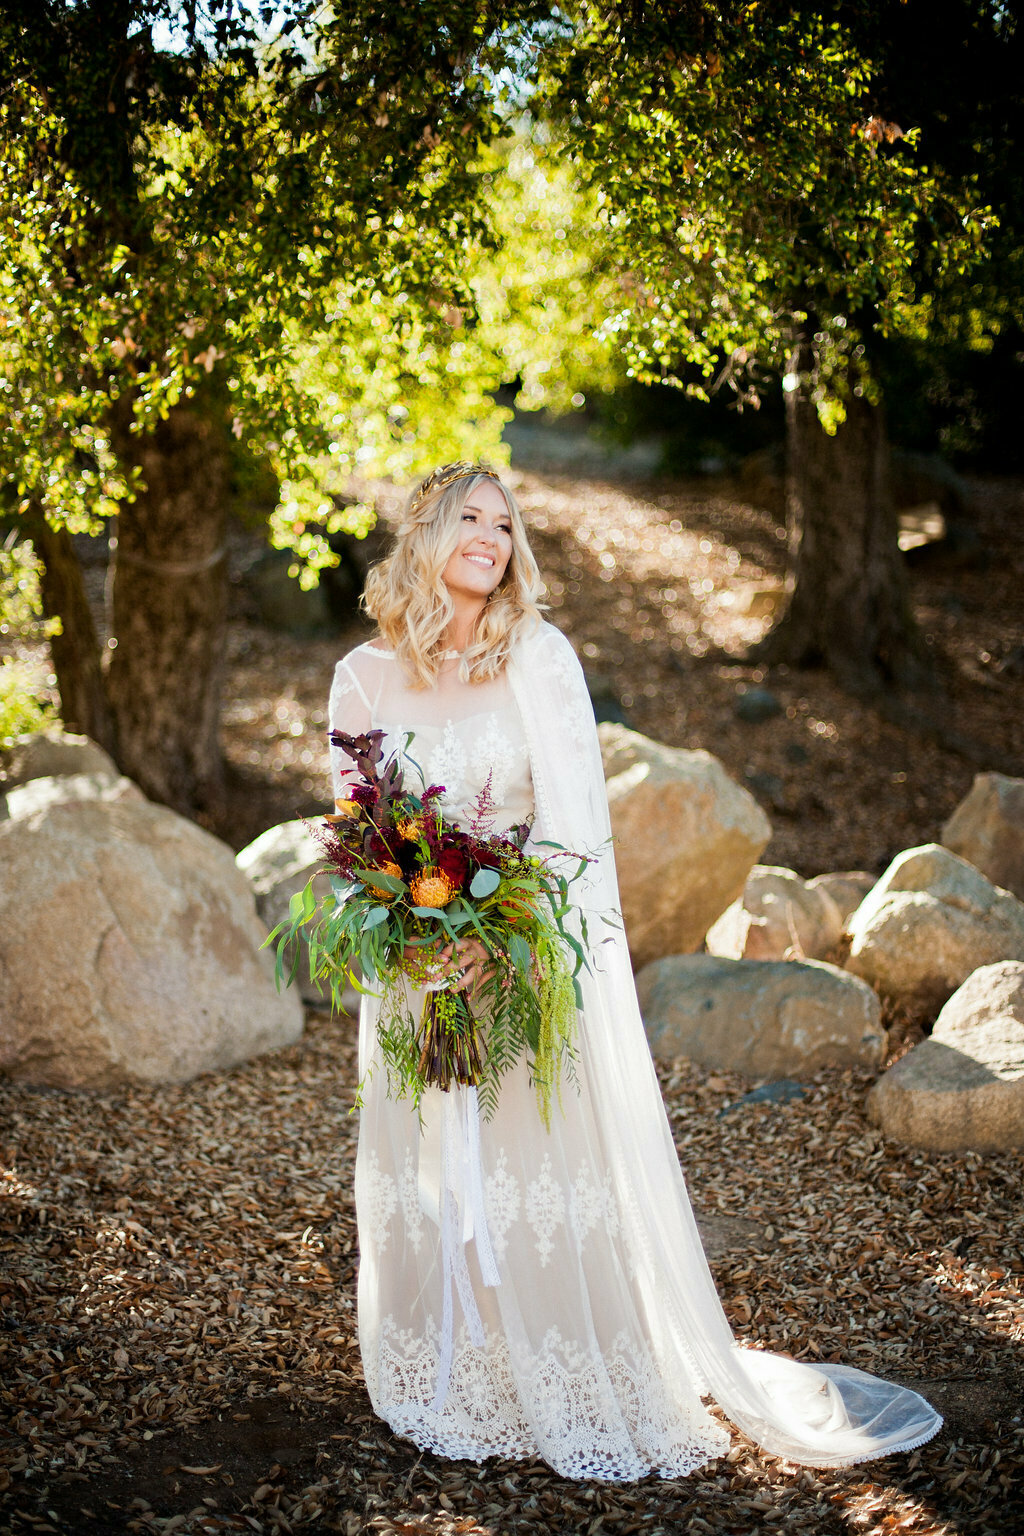 bride-medan-holding-an-oversized-bouquet-dressed-in-a-long-sleeved-lace-vintage-style-wedding-dress